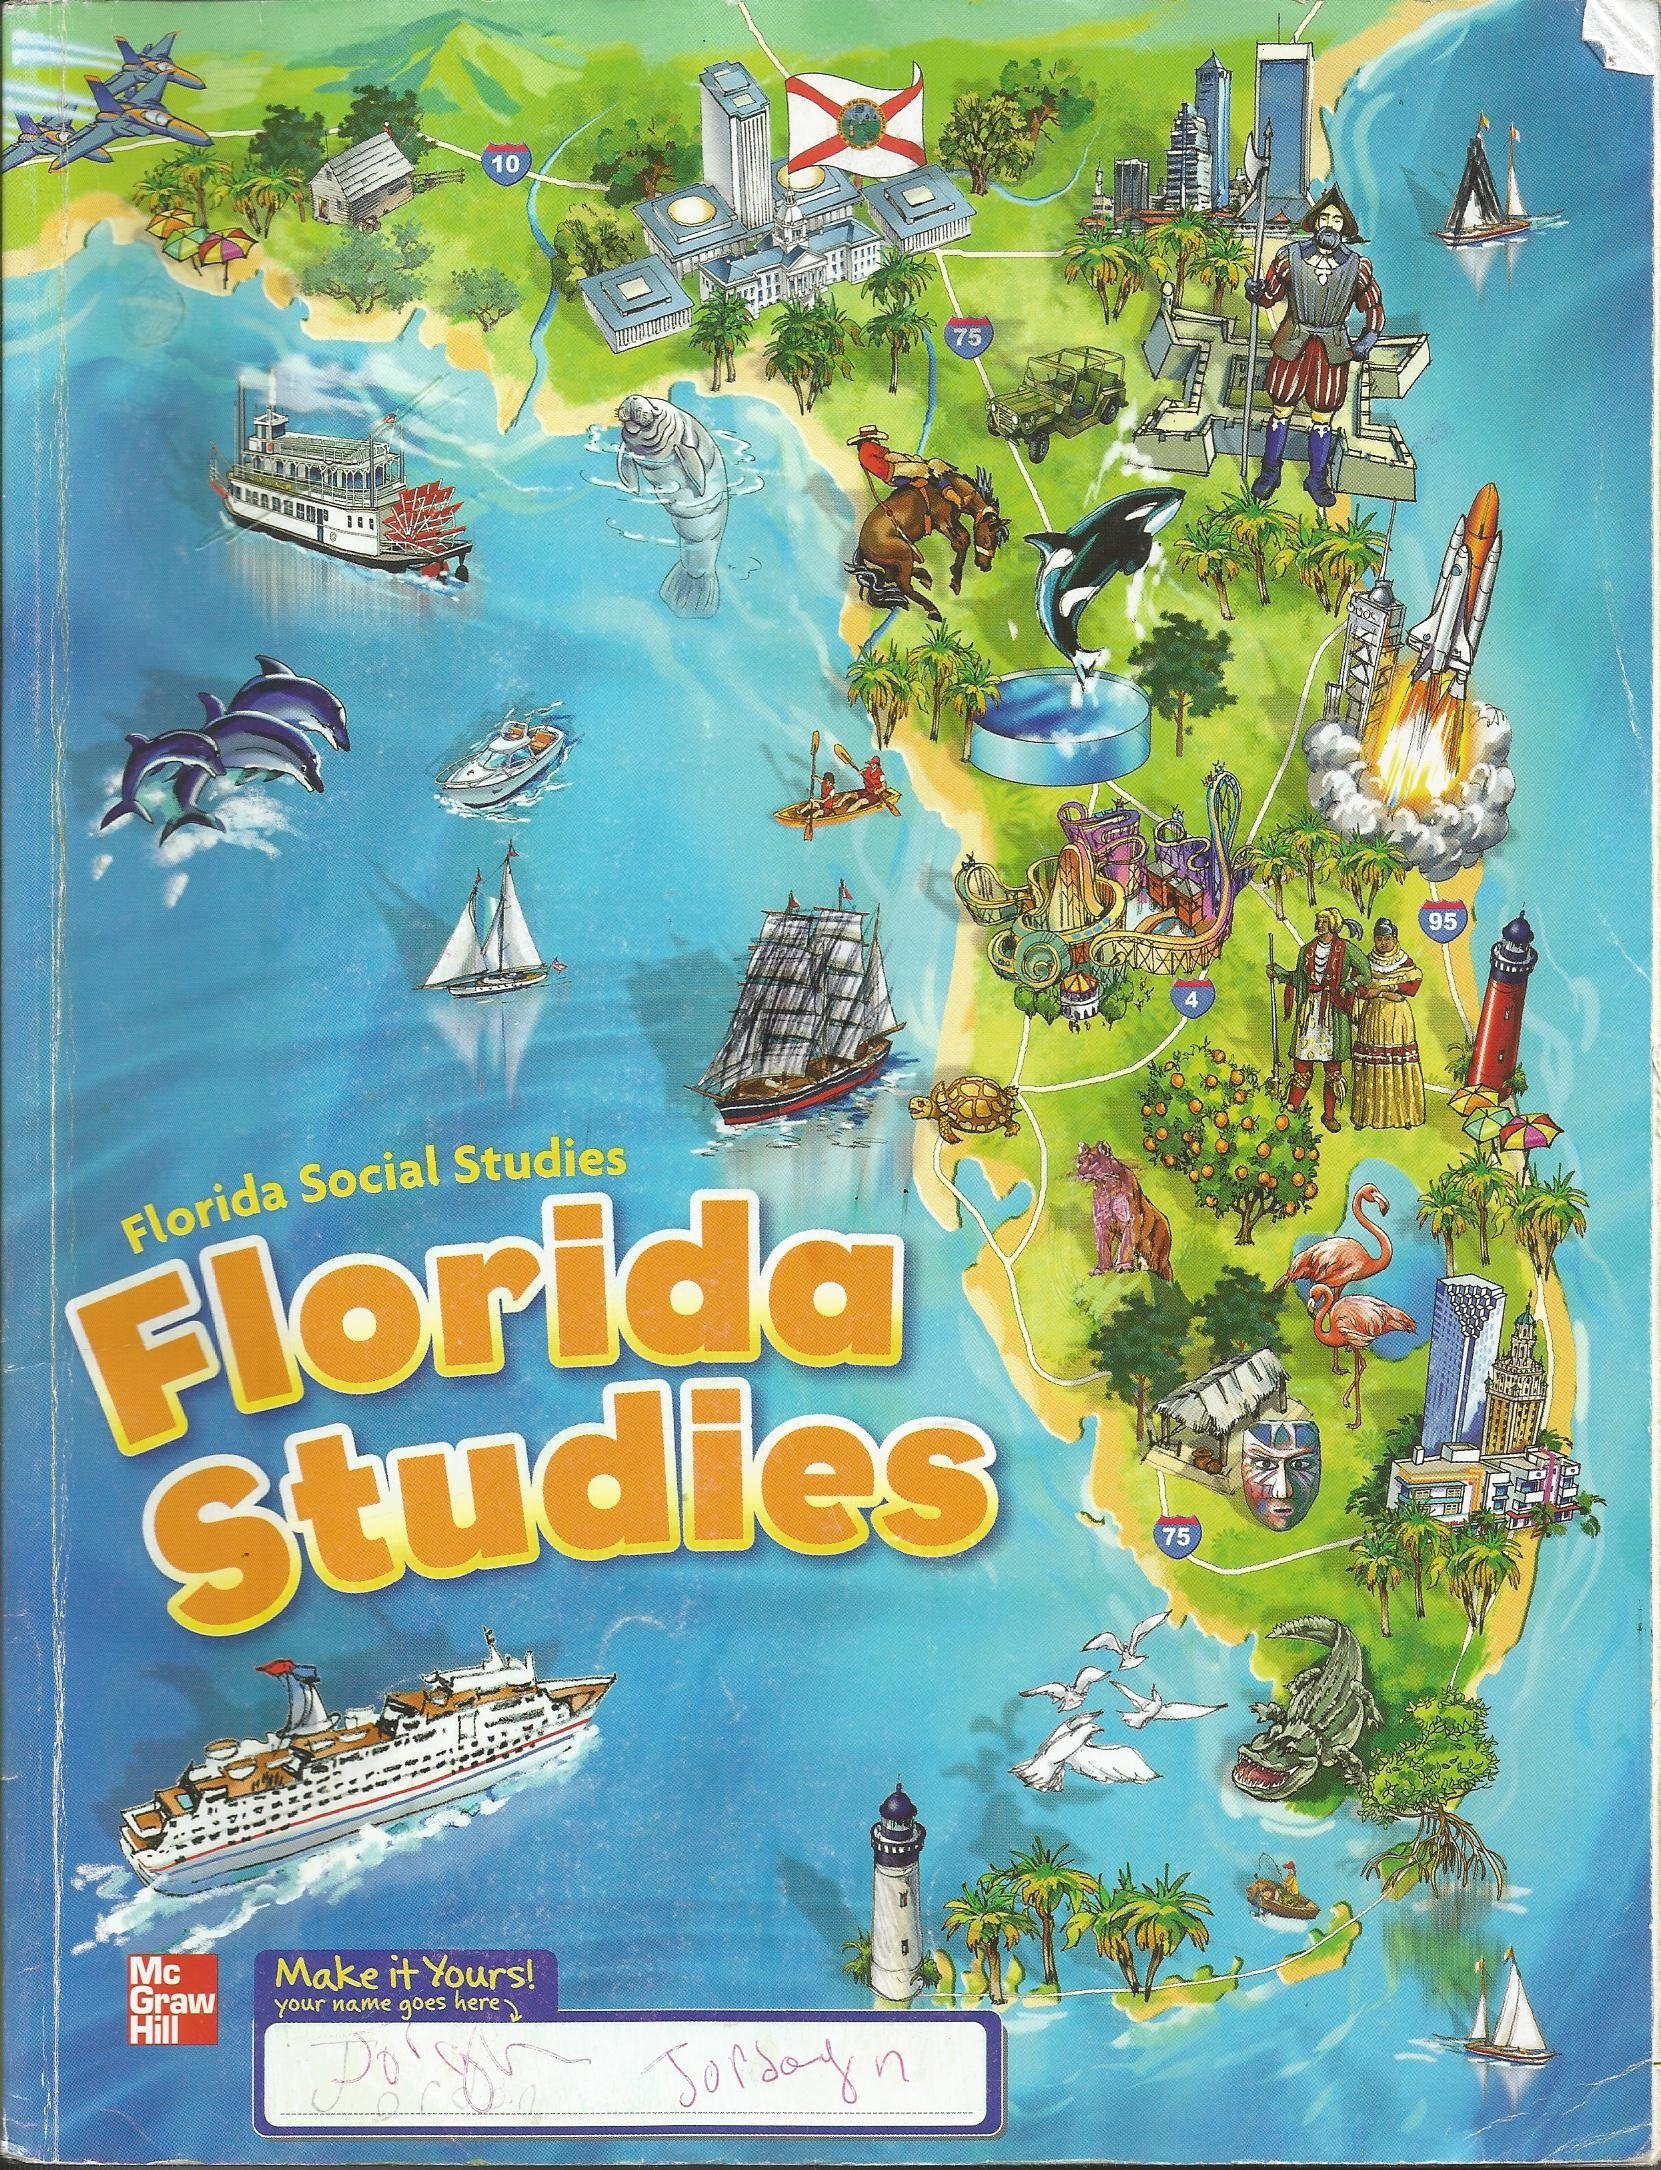 Florida History Worksheets 4th Grade Florida social Stu S 4 Amazon Books